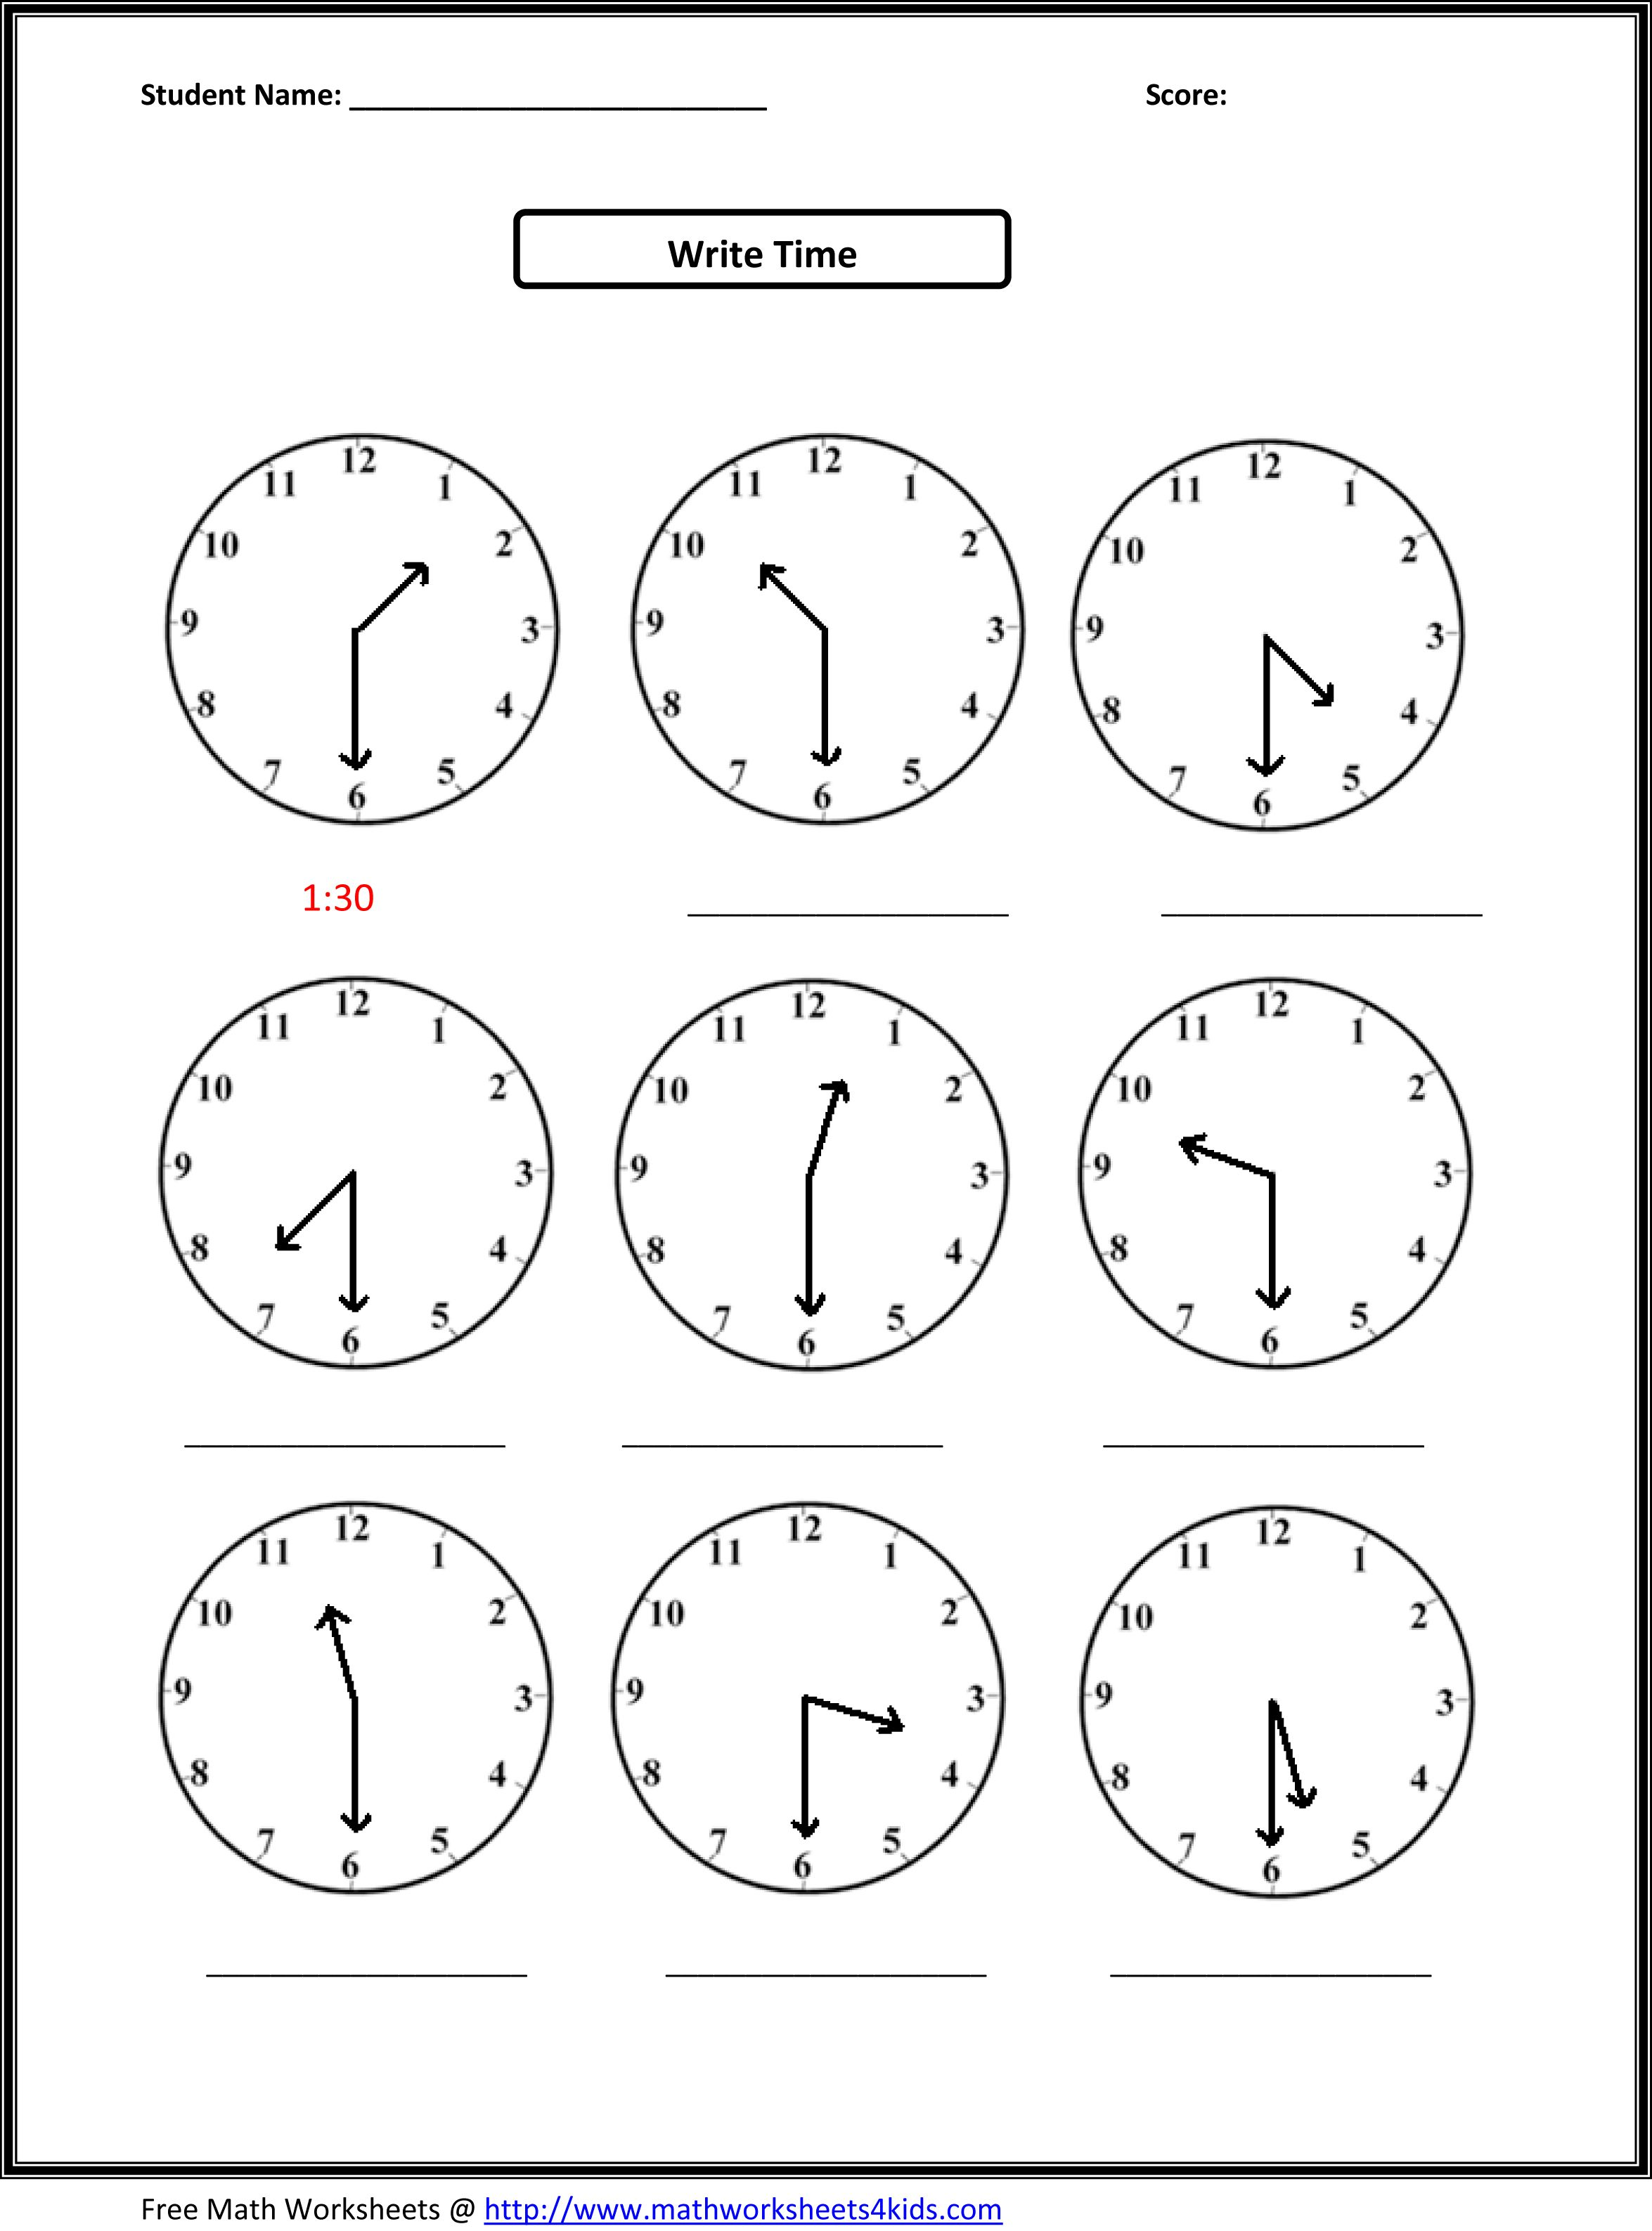 Proatmealus  Stunning Worksheet On Time For Grade   Reocurent With Lovable Free Printable Telling Time Worksheets Nd Grade  Reocurent With Delightful R Controlled Vowels Worksheets St Grade Also Goal Setting Worksheets For Kids In Addition Least Common Denominator Fractions Worksheet And Expense Worksheet Excel As Well As Thermochemistry Worksheets Additionally Simple Subtraction Worksheet From Reocurentcom With Proatmealus  Lovable Worksheet On Time For Grade   Reocurent With Delightful Free Printable Telling Time Worksheets Nd Grade  Reocurent And Stunning R Controlled Vowels Worksheets St Grade Also Goal Setting Worksheets For Kids In Addition Least Common Denominator Fractions Worksheet From Reocurentcom